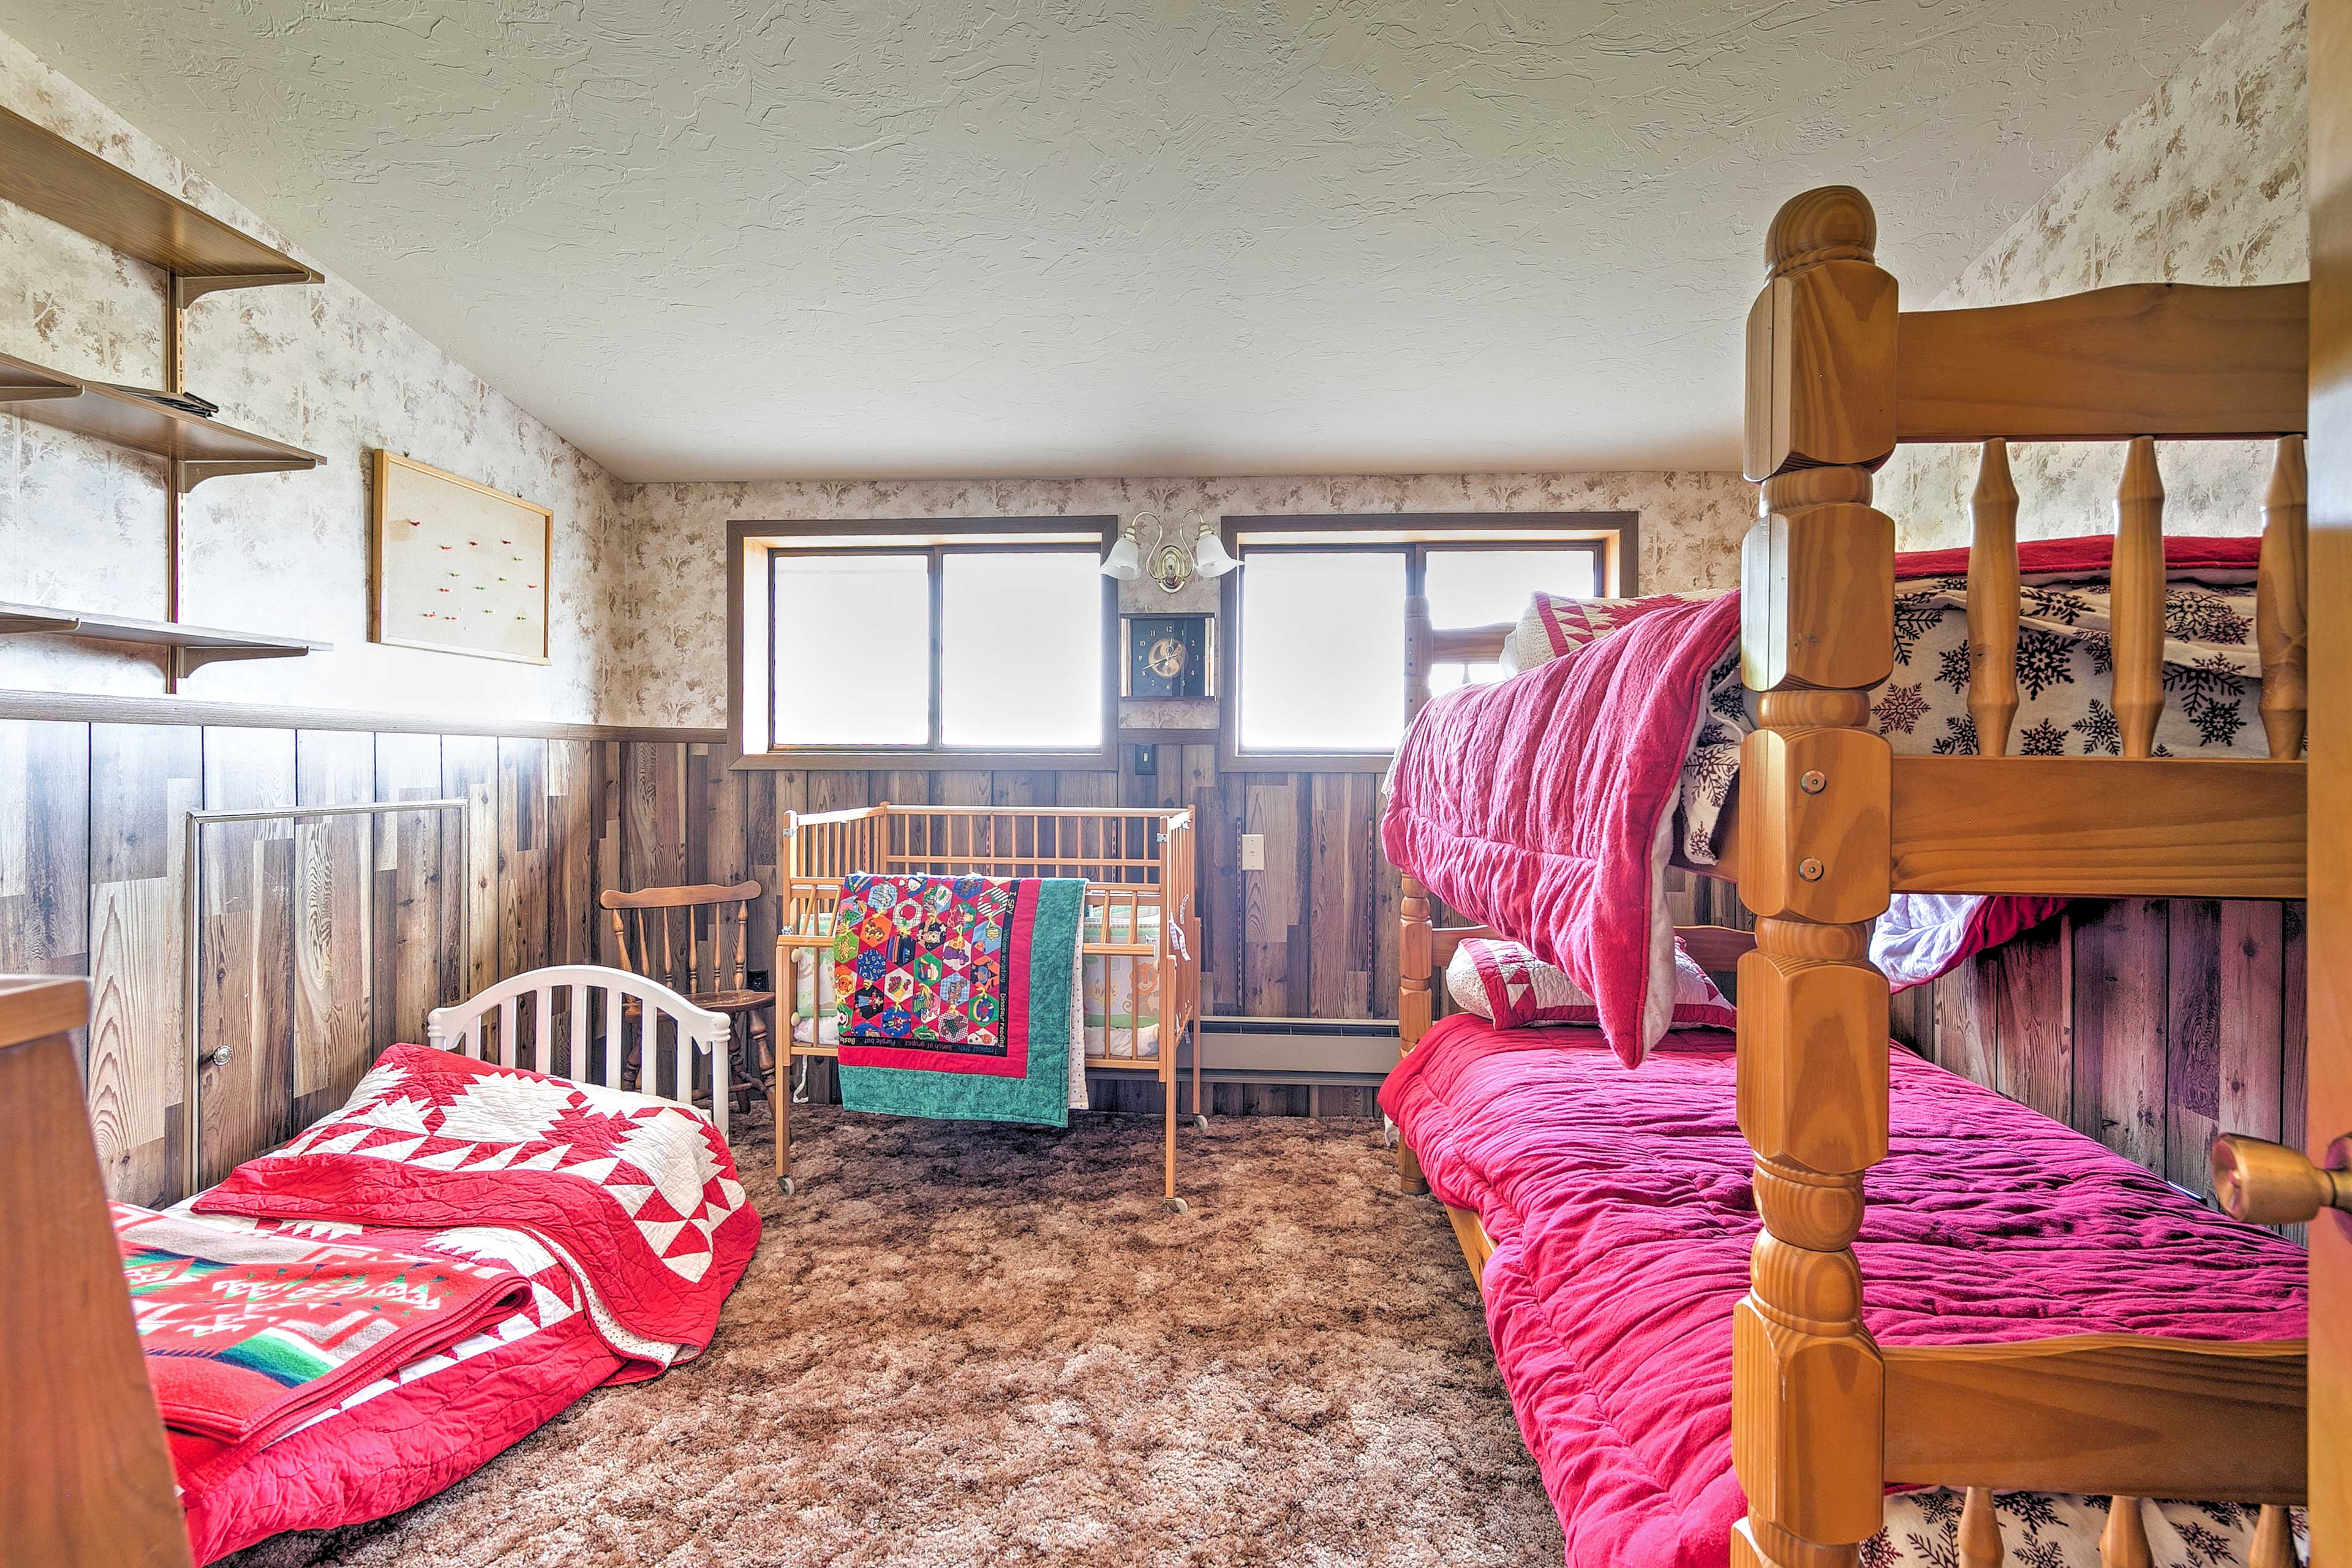 This home has a total of 5 plush  twin-sized beds.